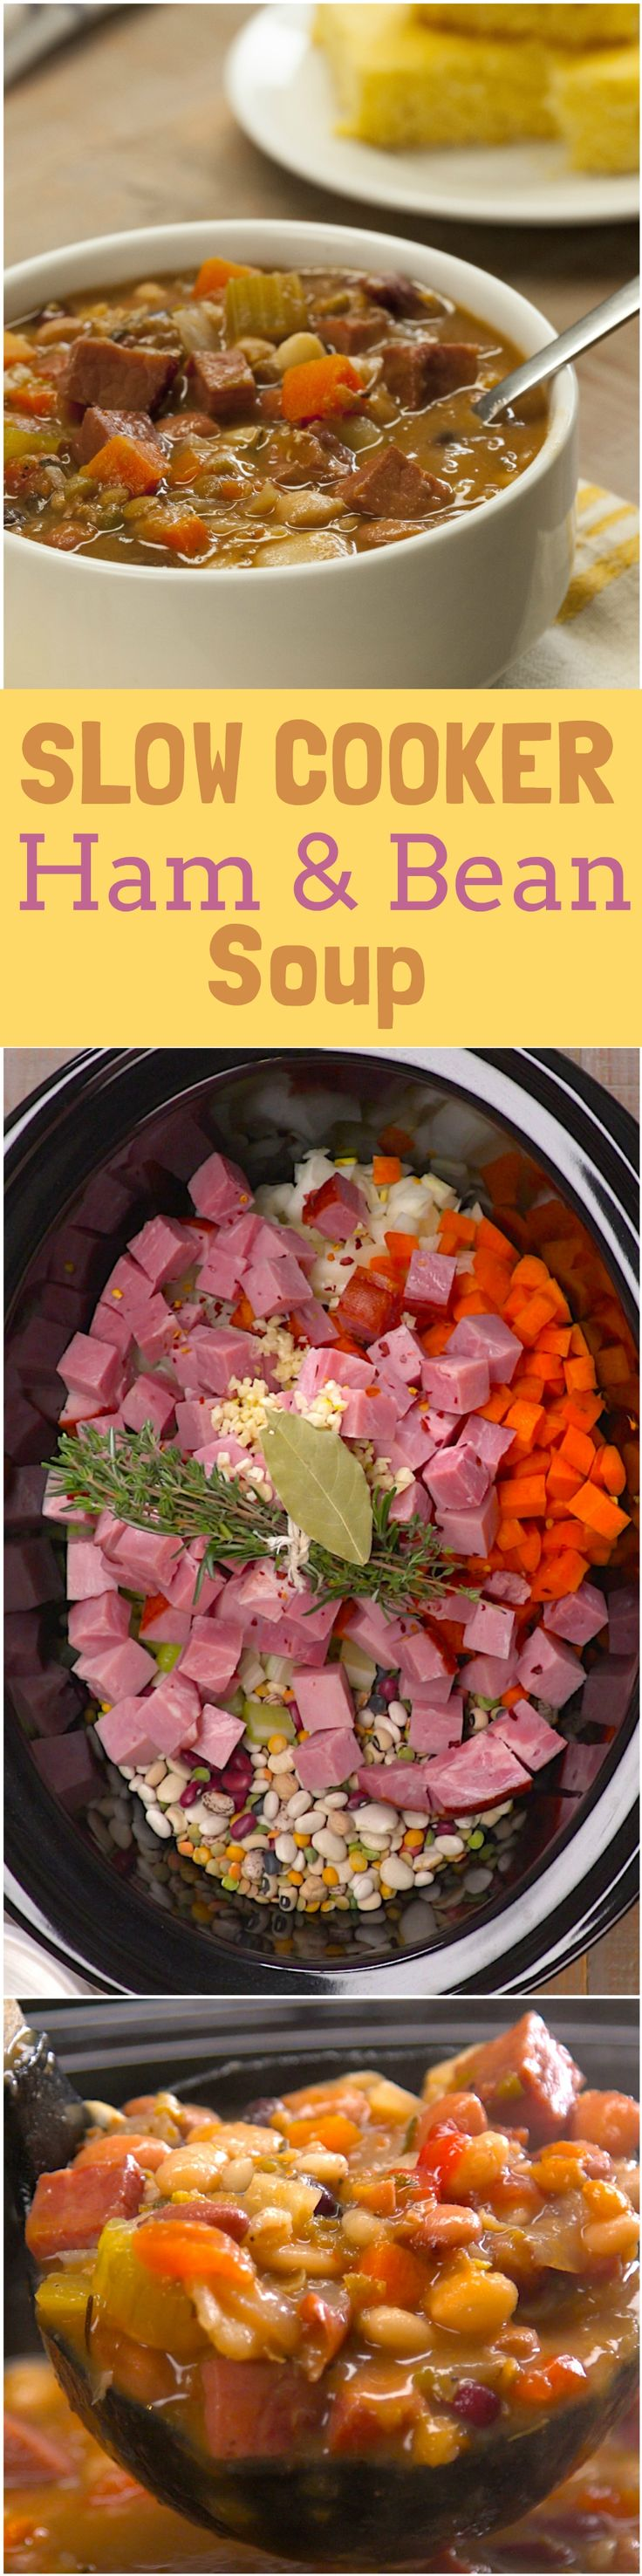 """You don't often hear a dish as simple as soup get called """"crazy good"""" — but that's the kind of praise that got thrown around when everyone in the TipHero kitchen tried this slow cooker ham and bean soup."""